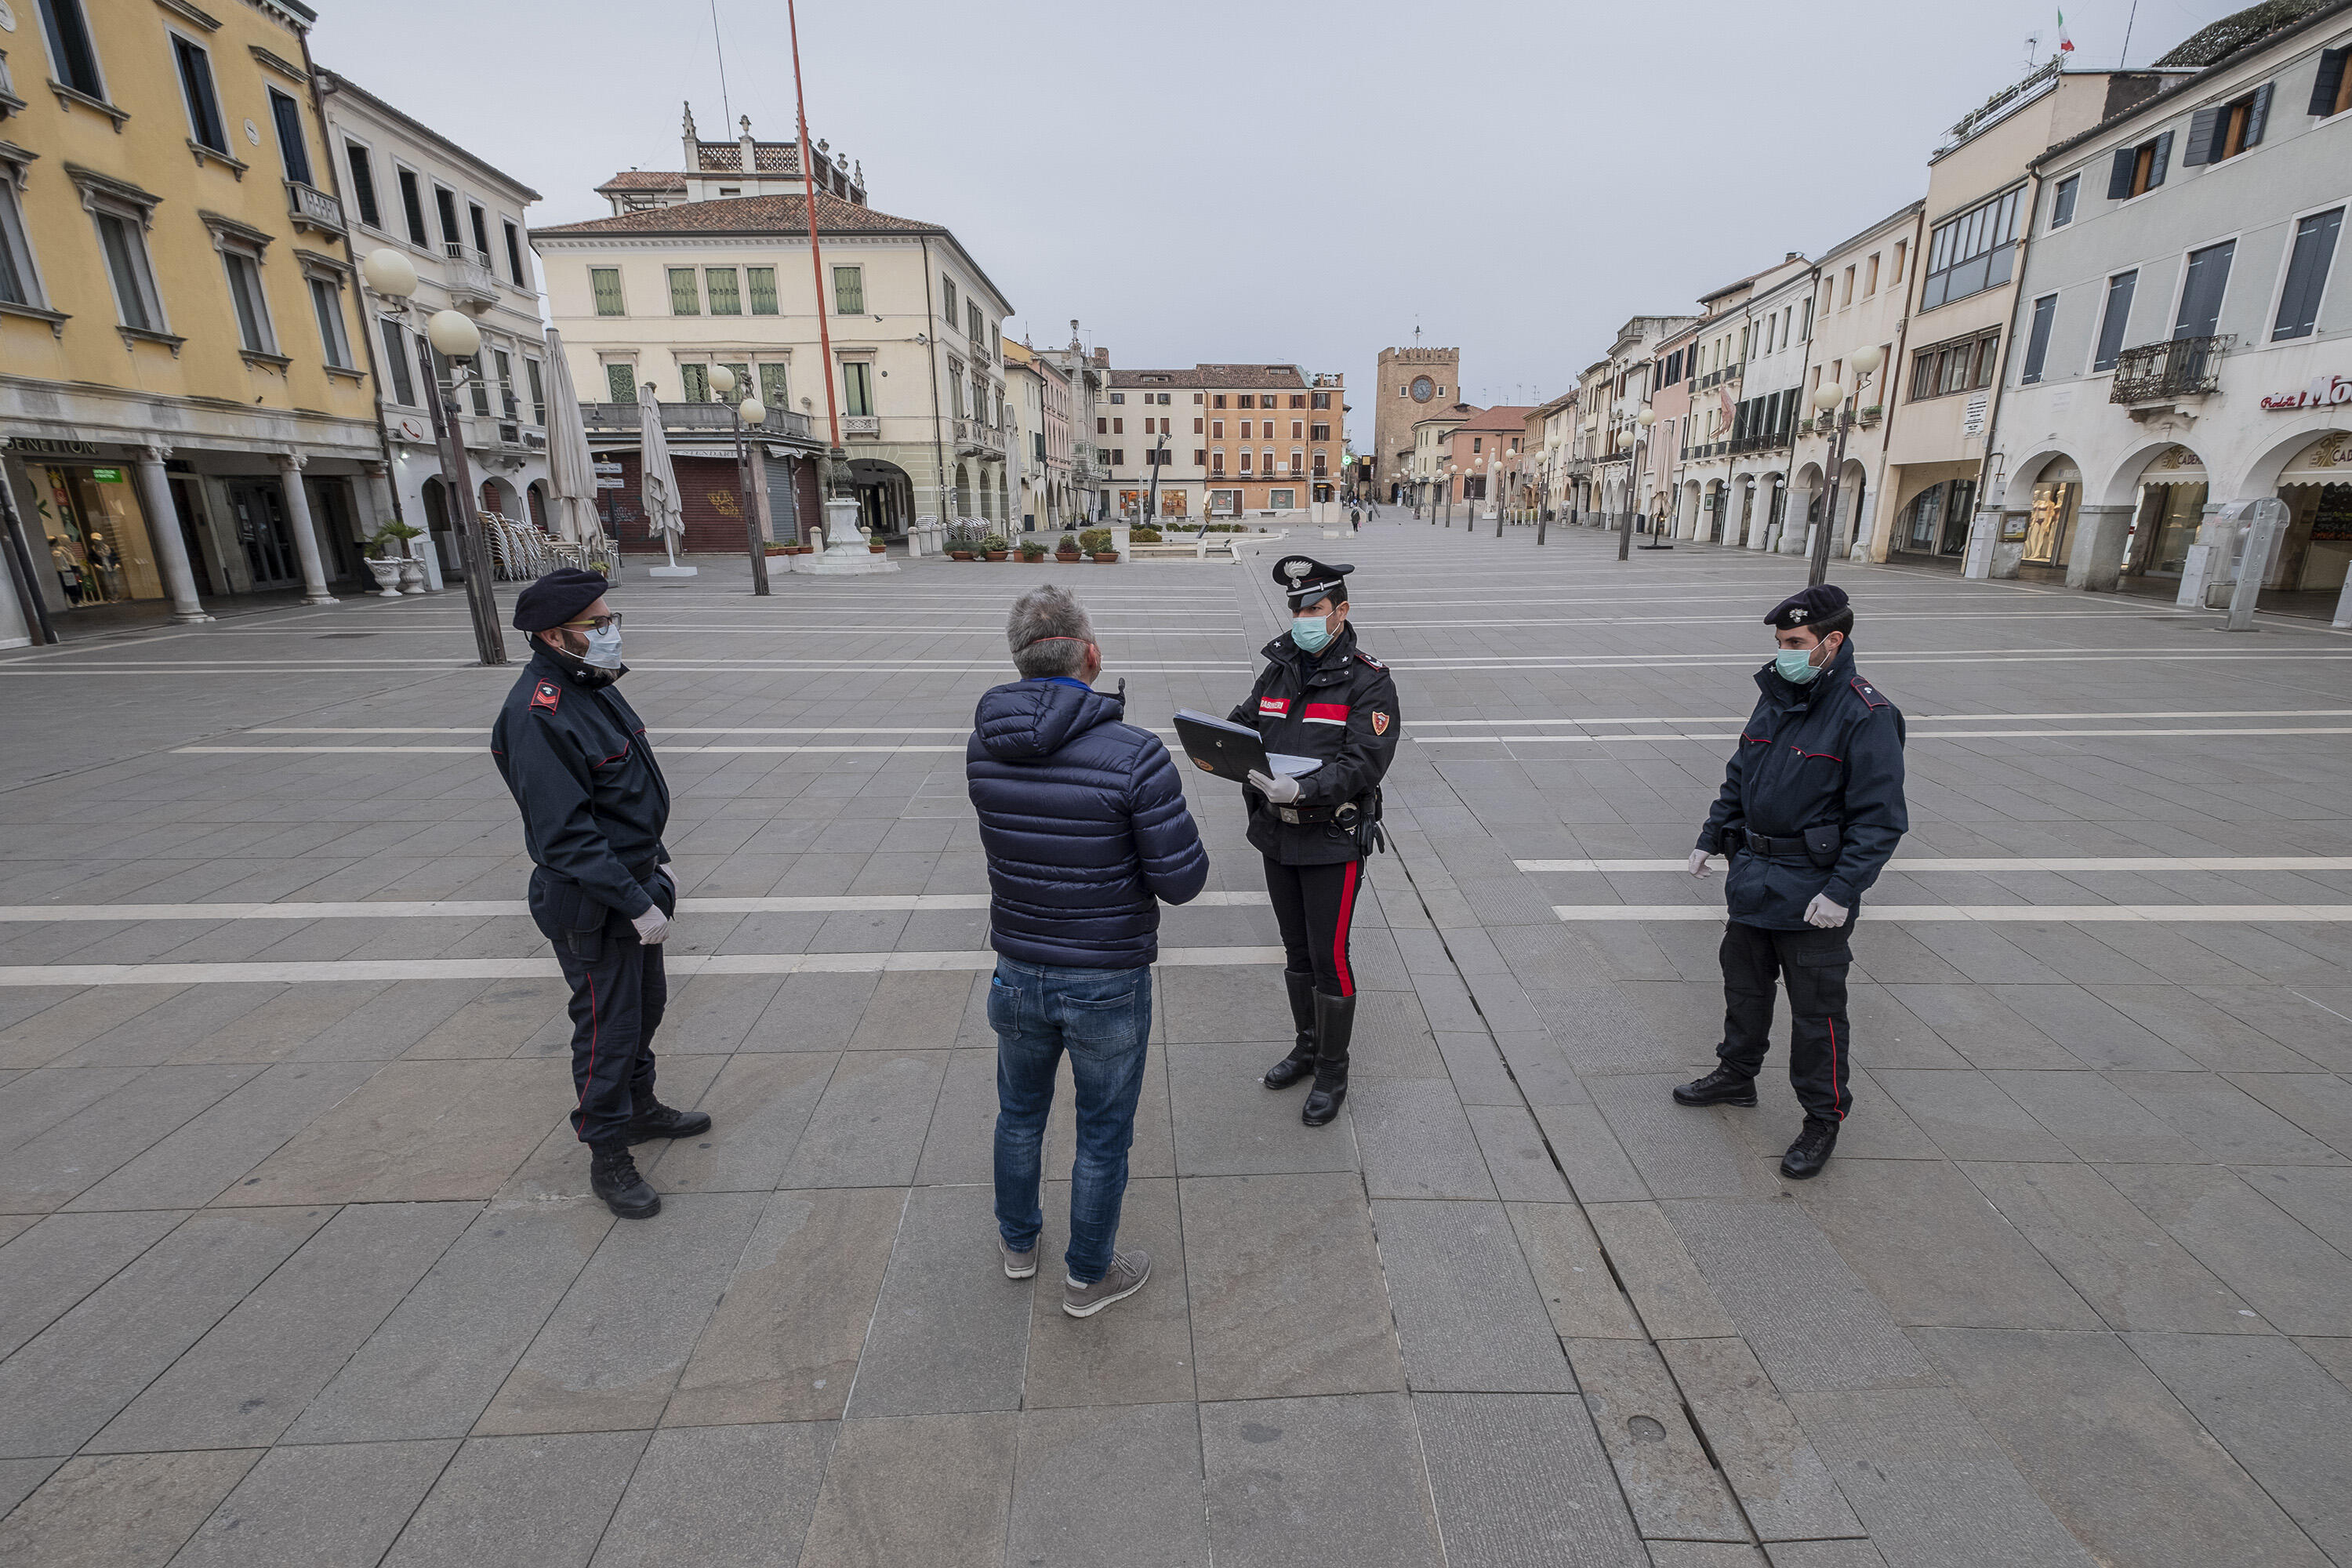 Carabinieri check a man's credentials during the coronavirus lockdown